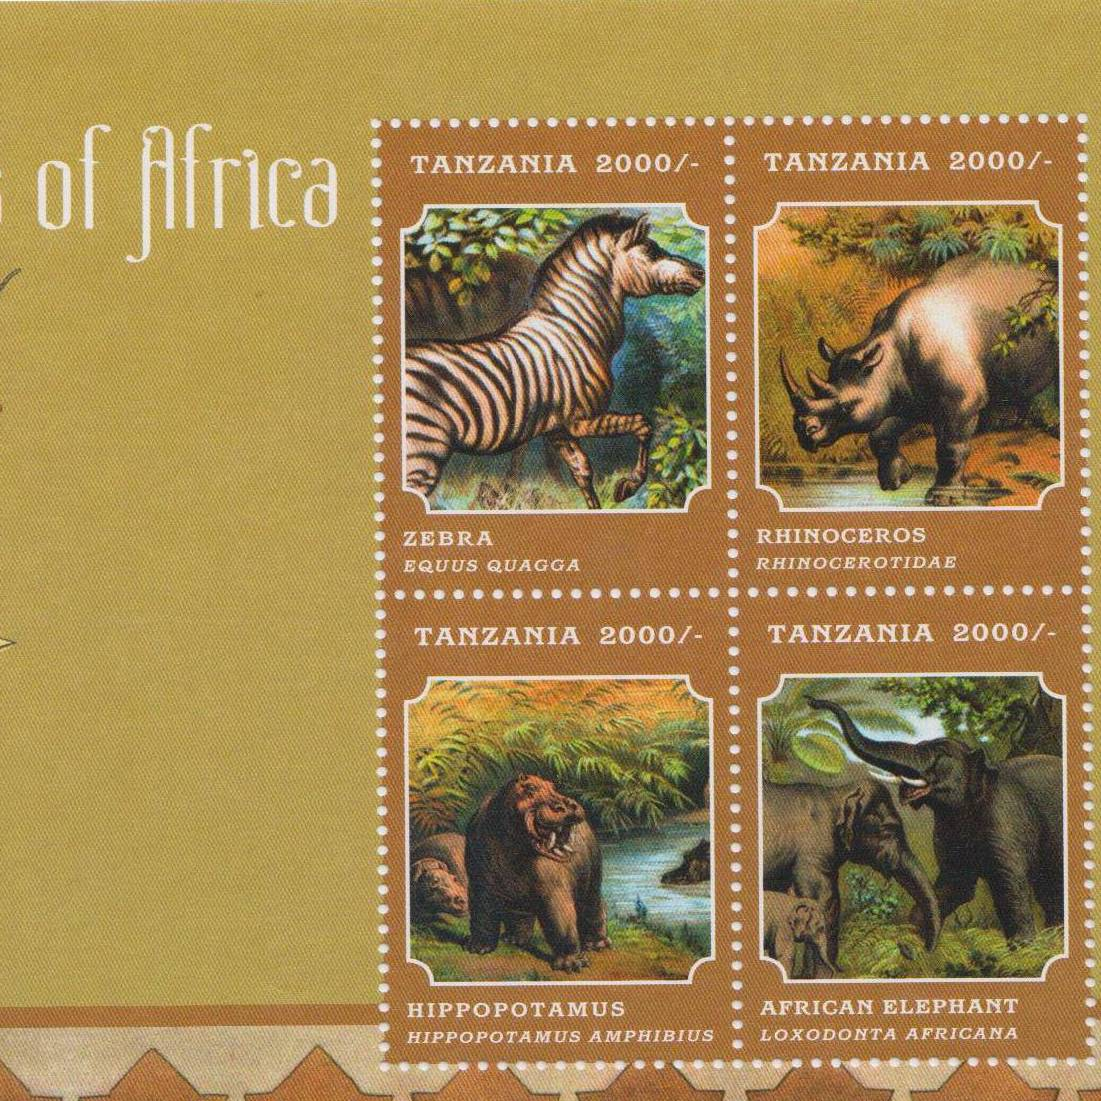 Tanzania Stamps